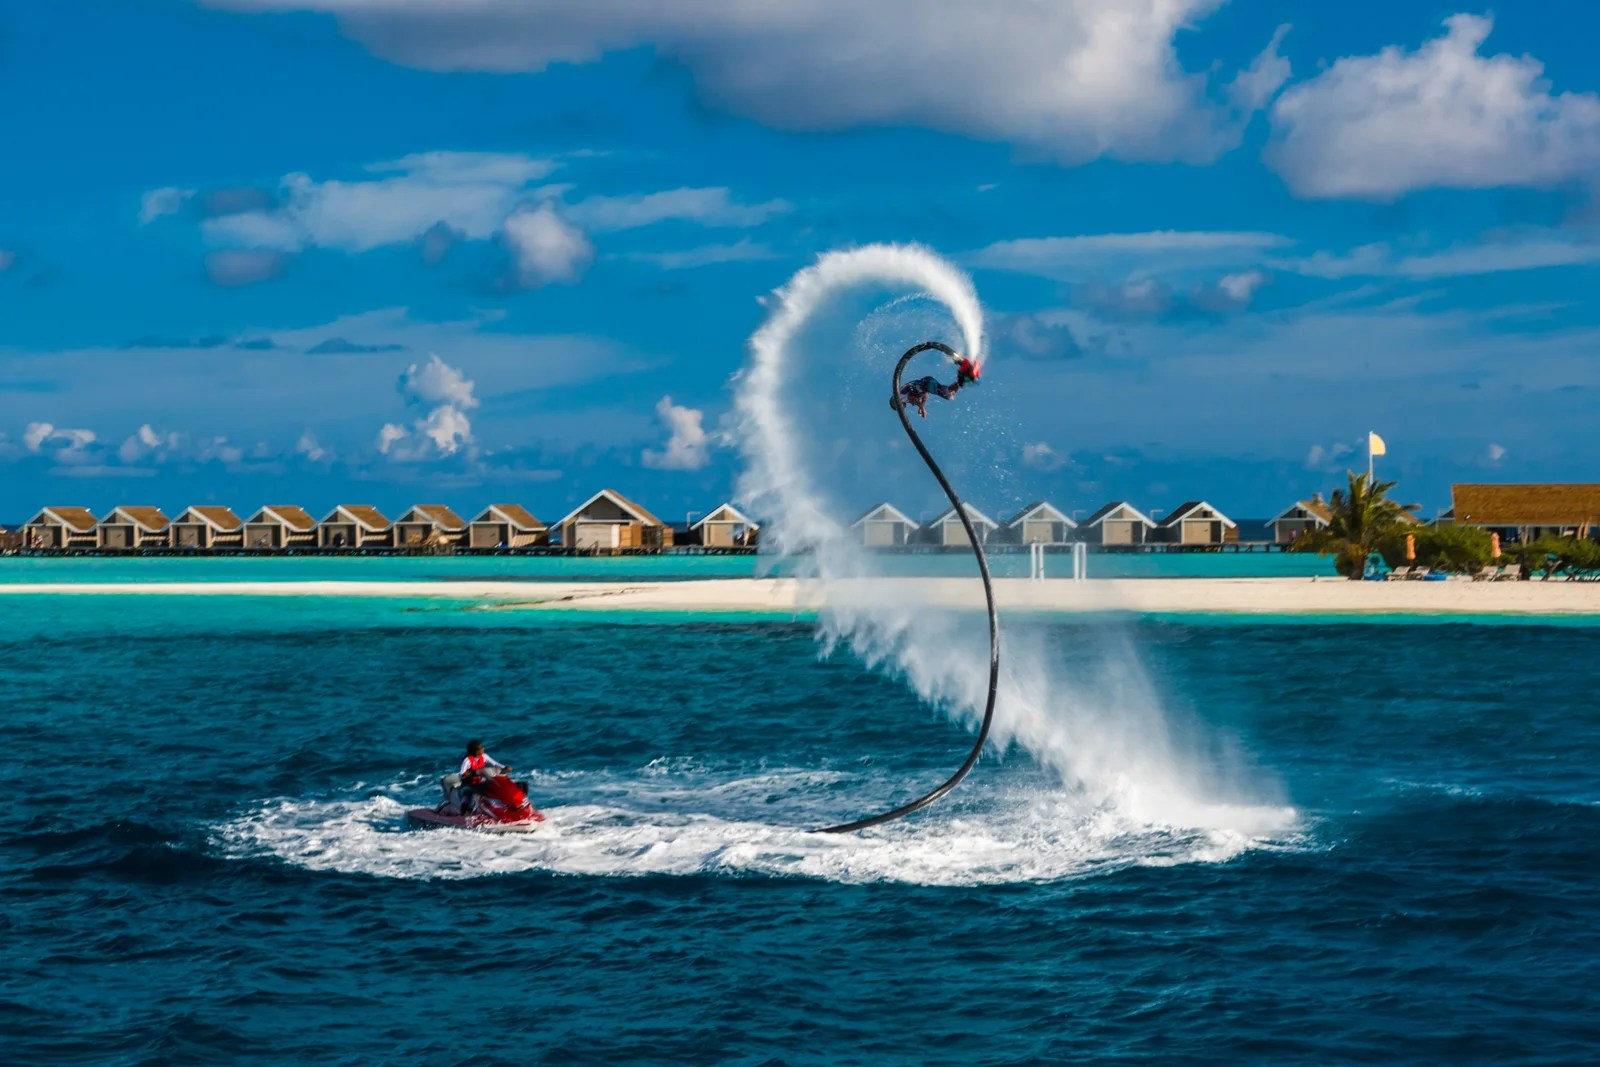 For the more adventures, try Fly Boarding! (Photo by levente bodo/Getty Images)